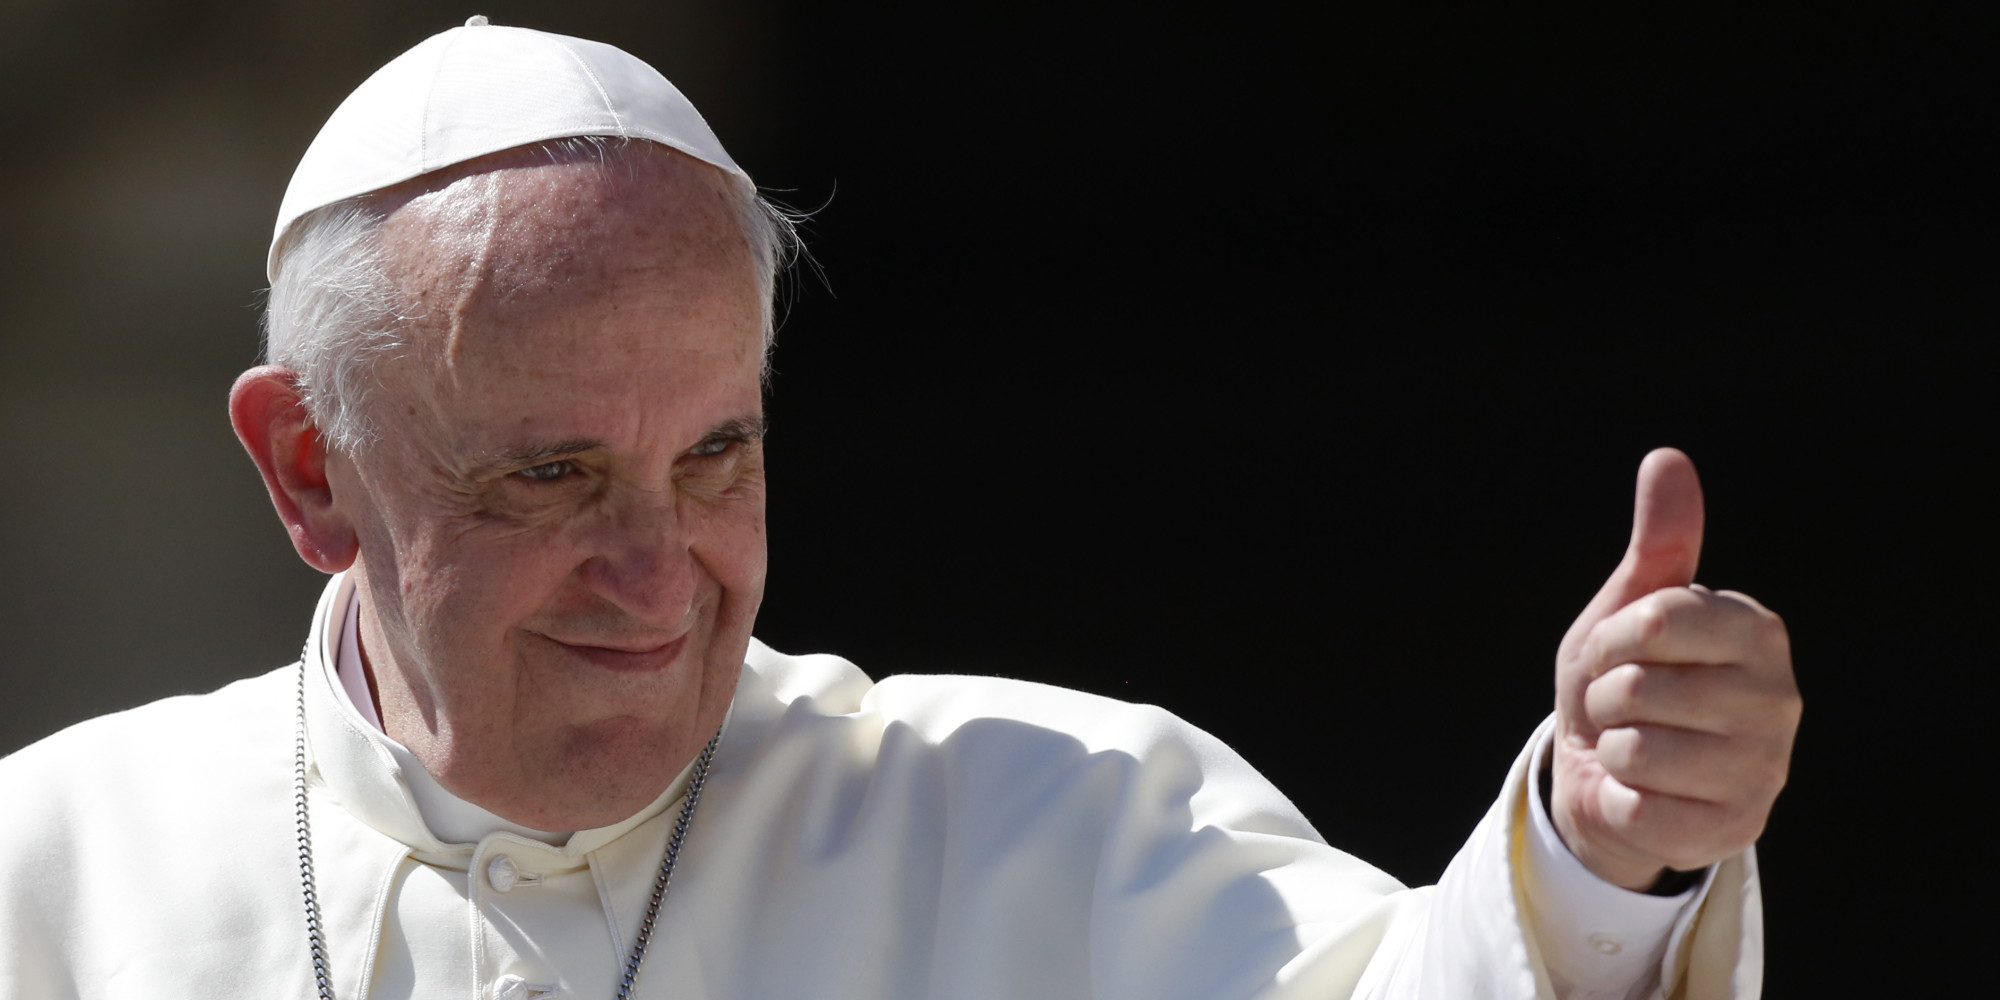 Five Faves: The 'Content Pope Francis Would Love' Edition